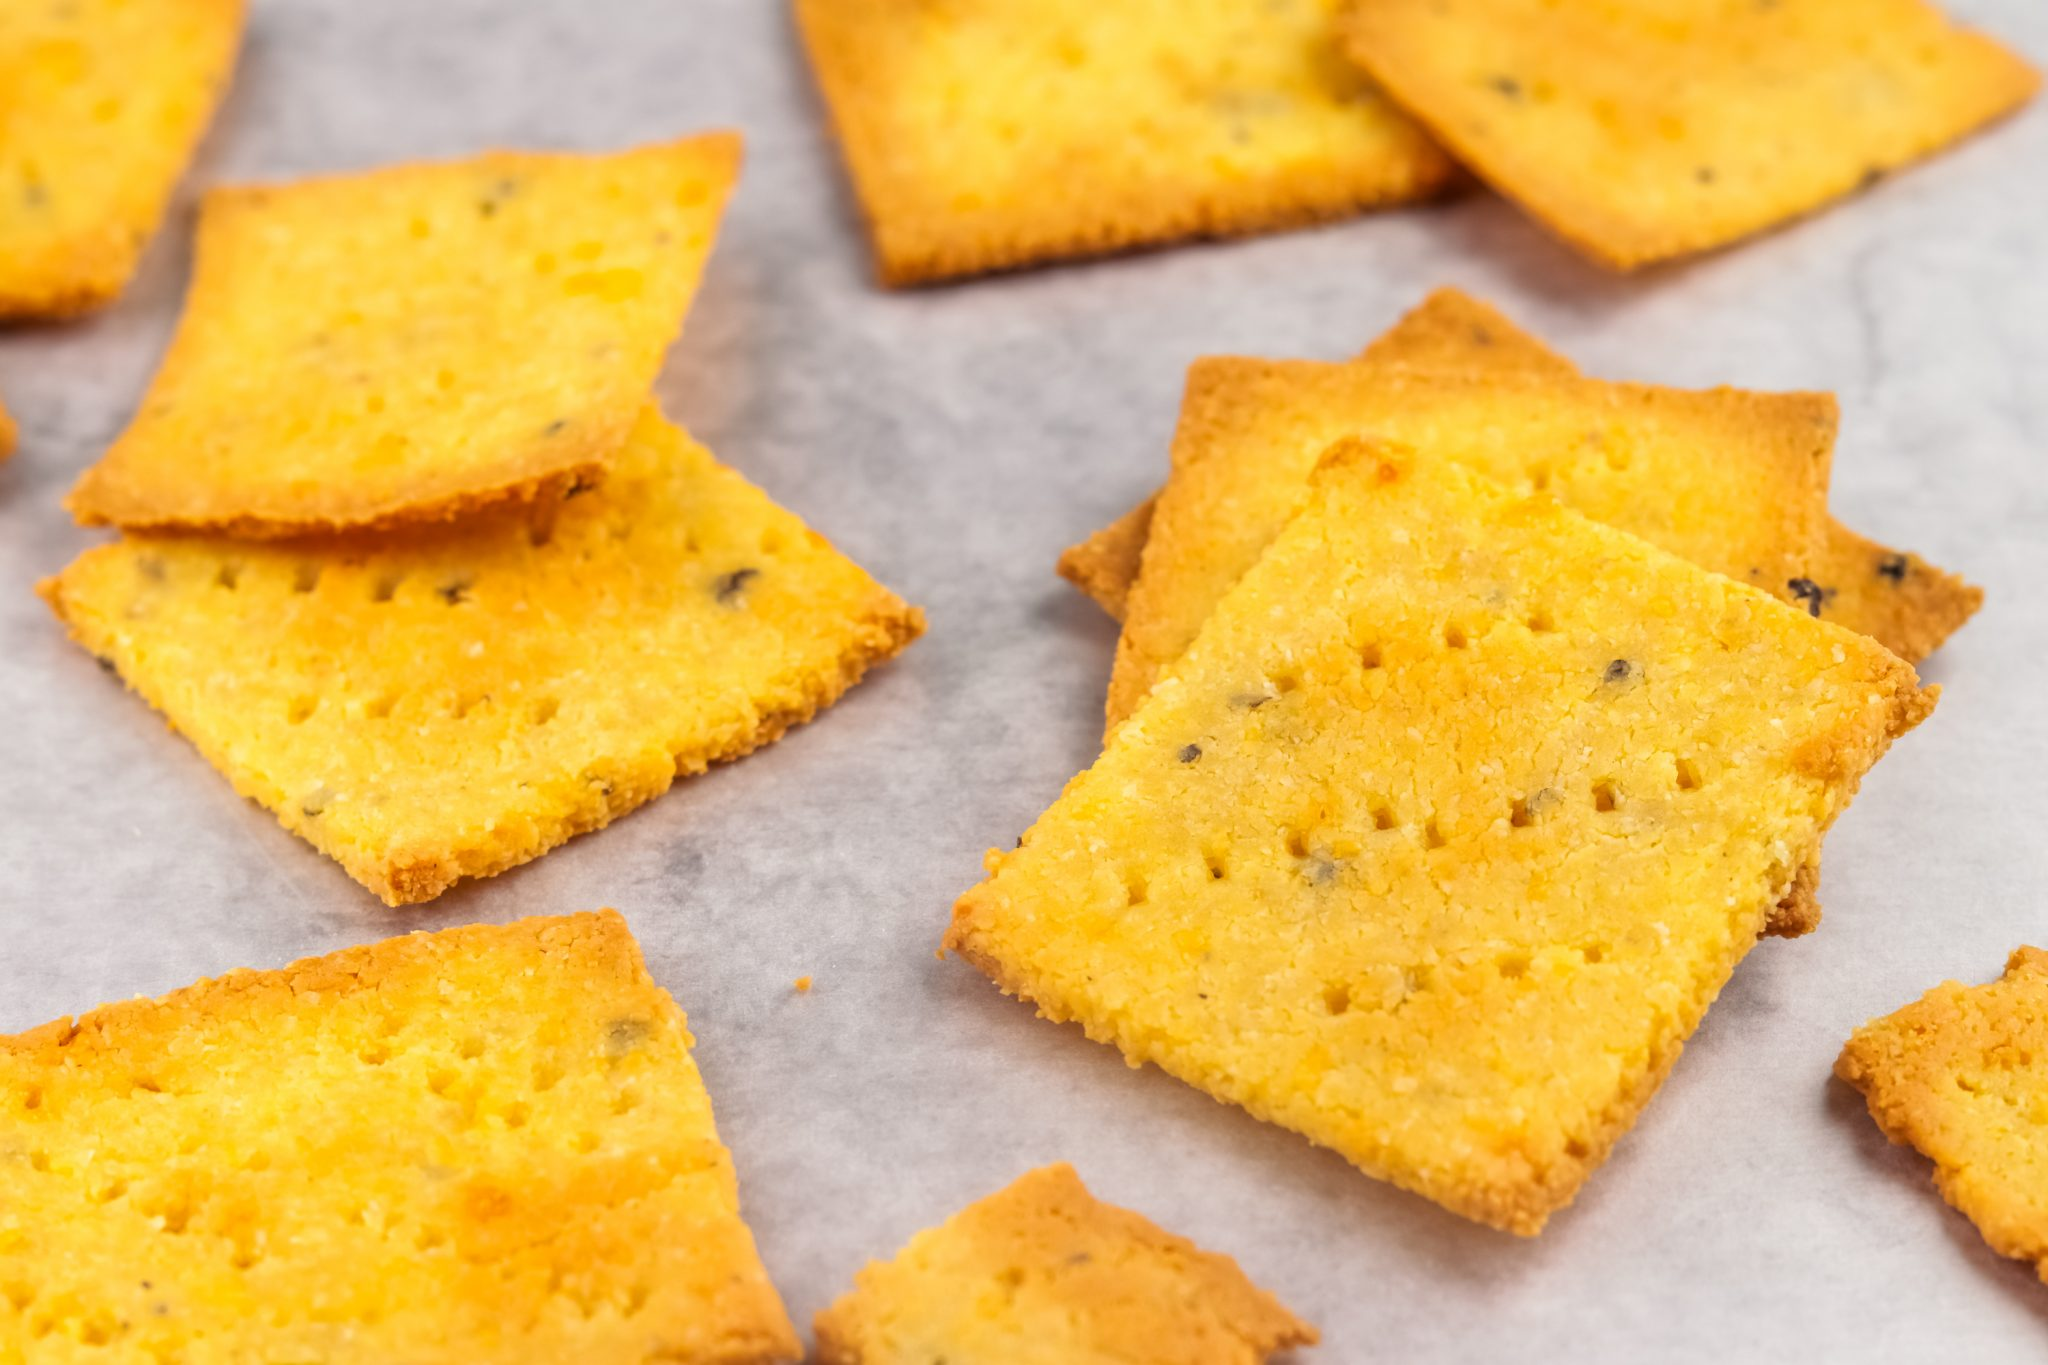 Ketogenic Recipes: Keto Cheese Biscuits